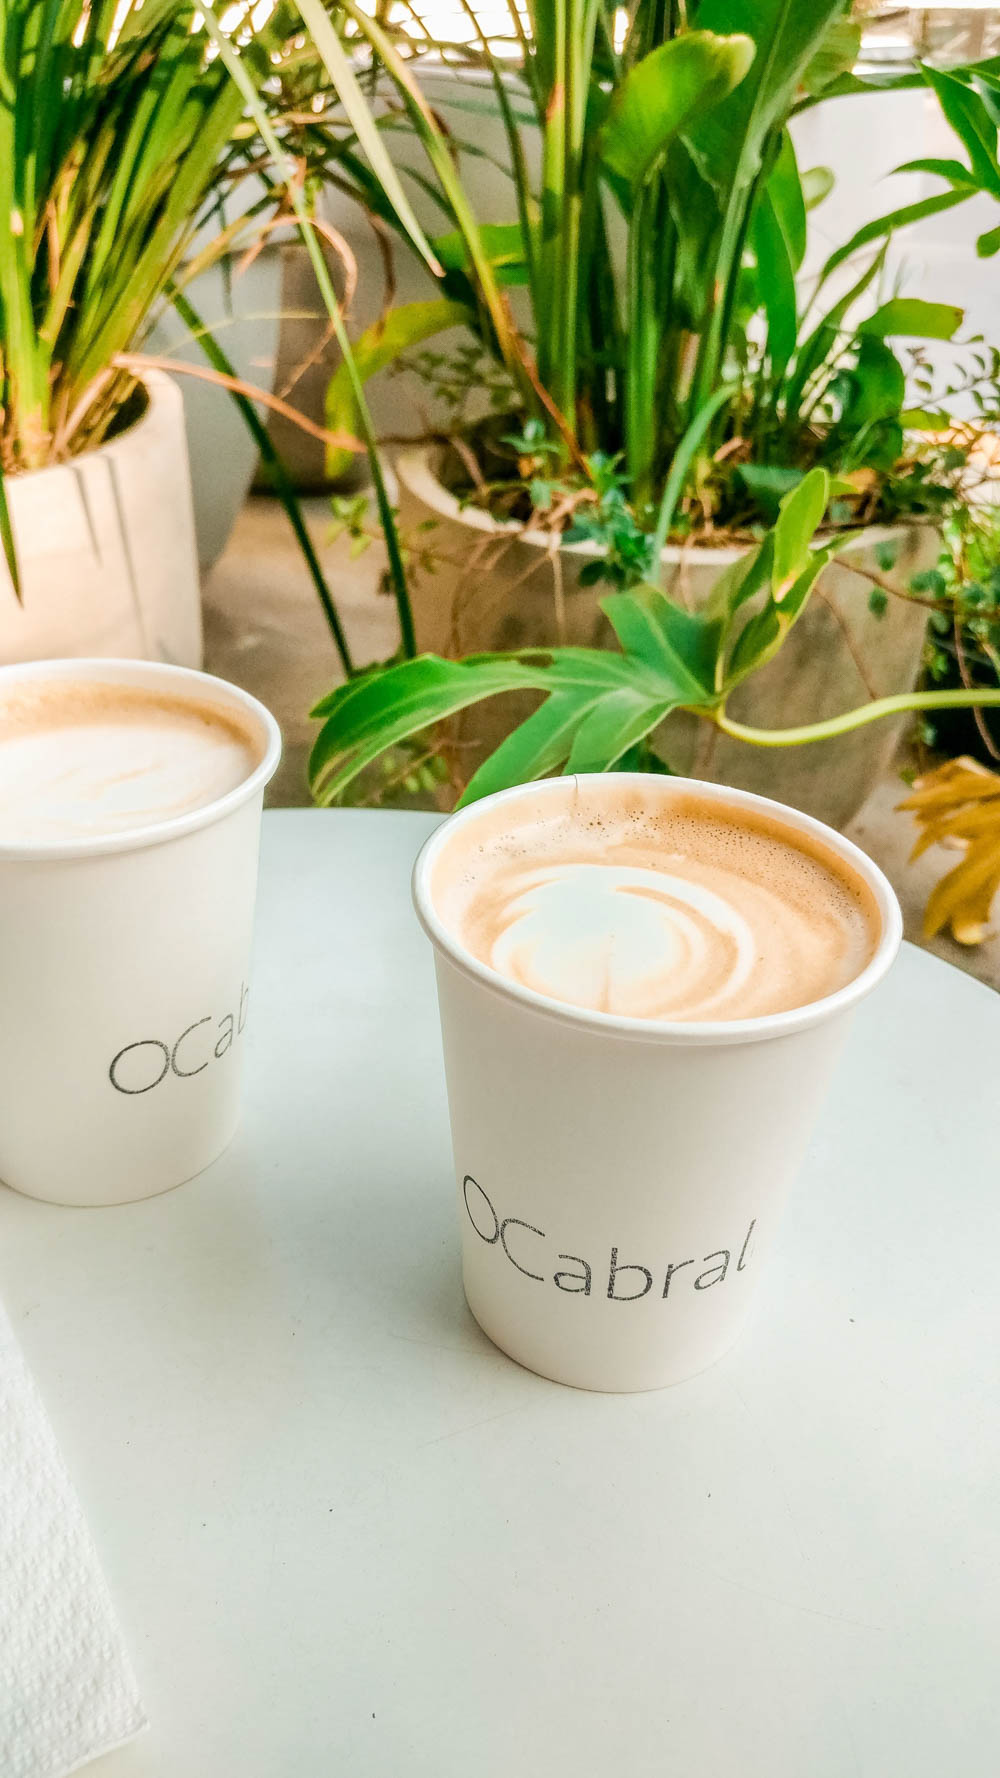 Flat white at OCabral Café - Specialty coffee shop guide to São Paulo, Brazil | Aliz's Wonderland